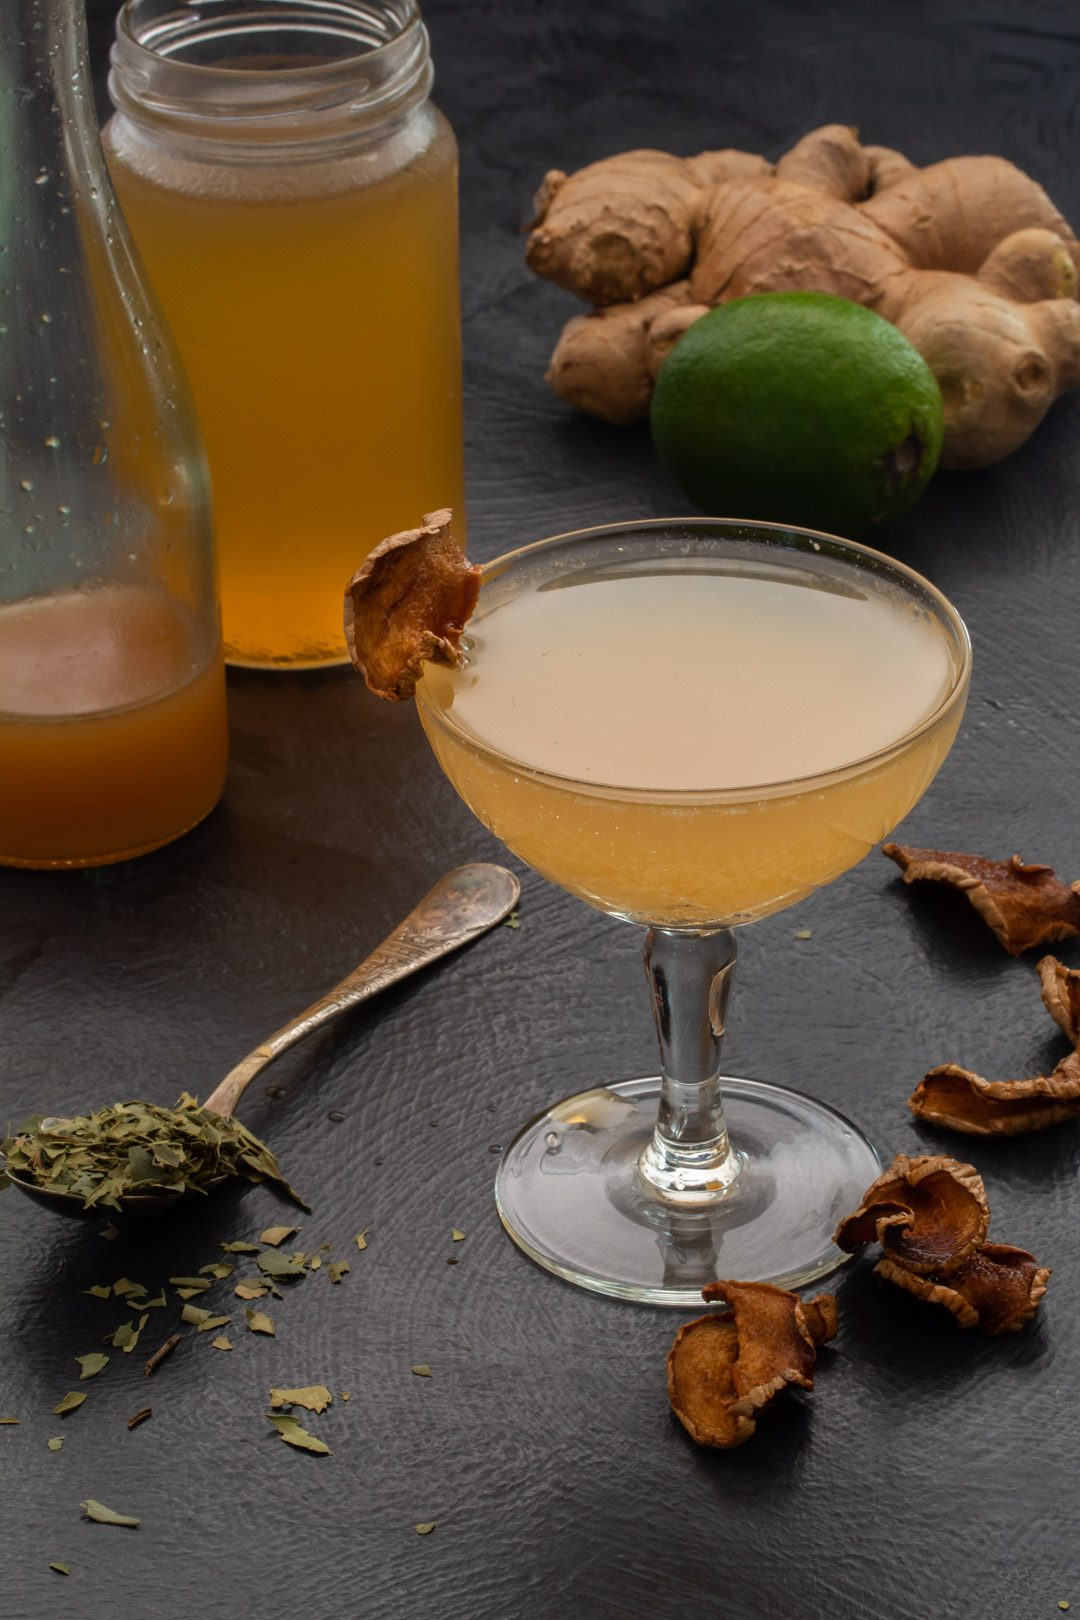 Ginger lime shrub daiquiri with cinnamon myrtle and ginger crisps: 45 degrees making, ginger lime detail